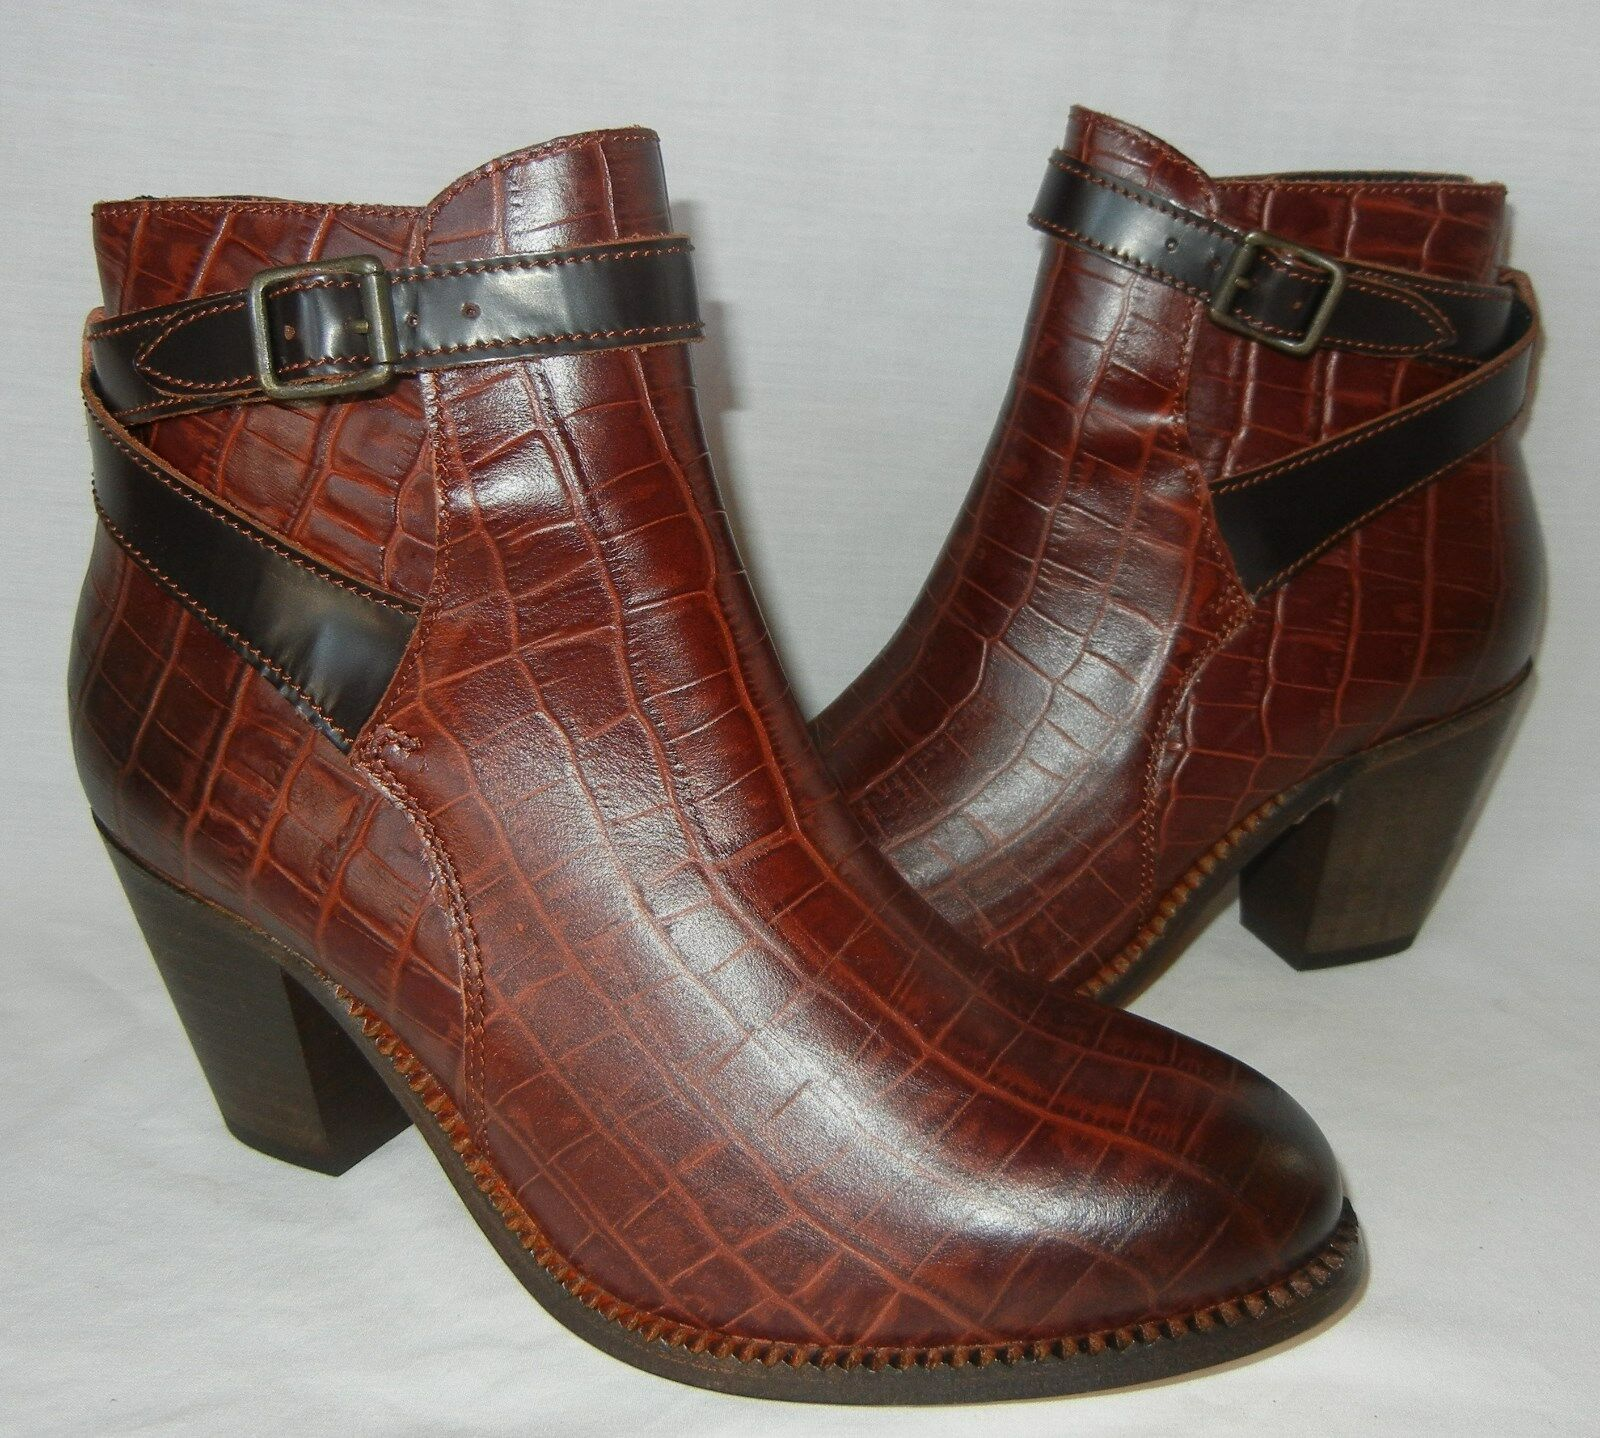 H shoes by Hudson Women's Lewkner Leather Ankle Boot Retail  325 size 10